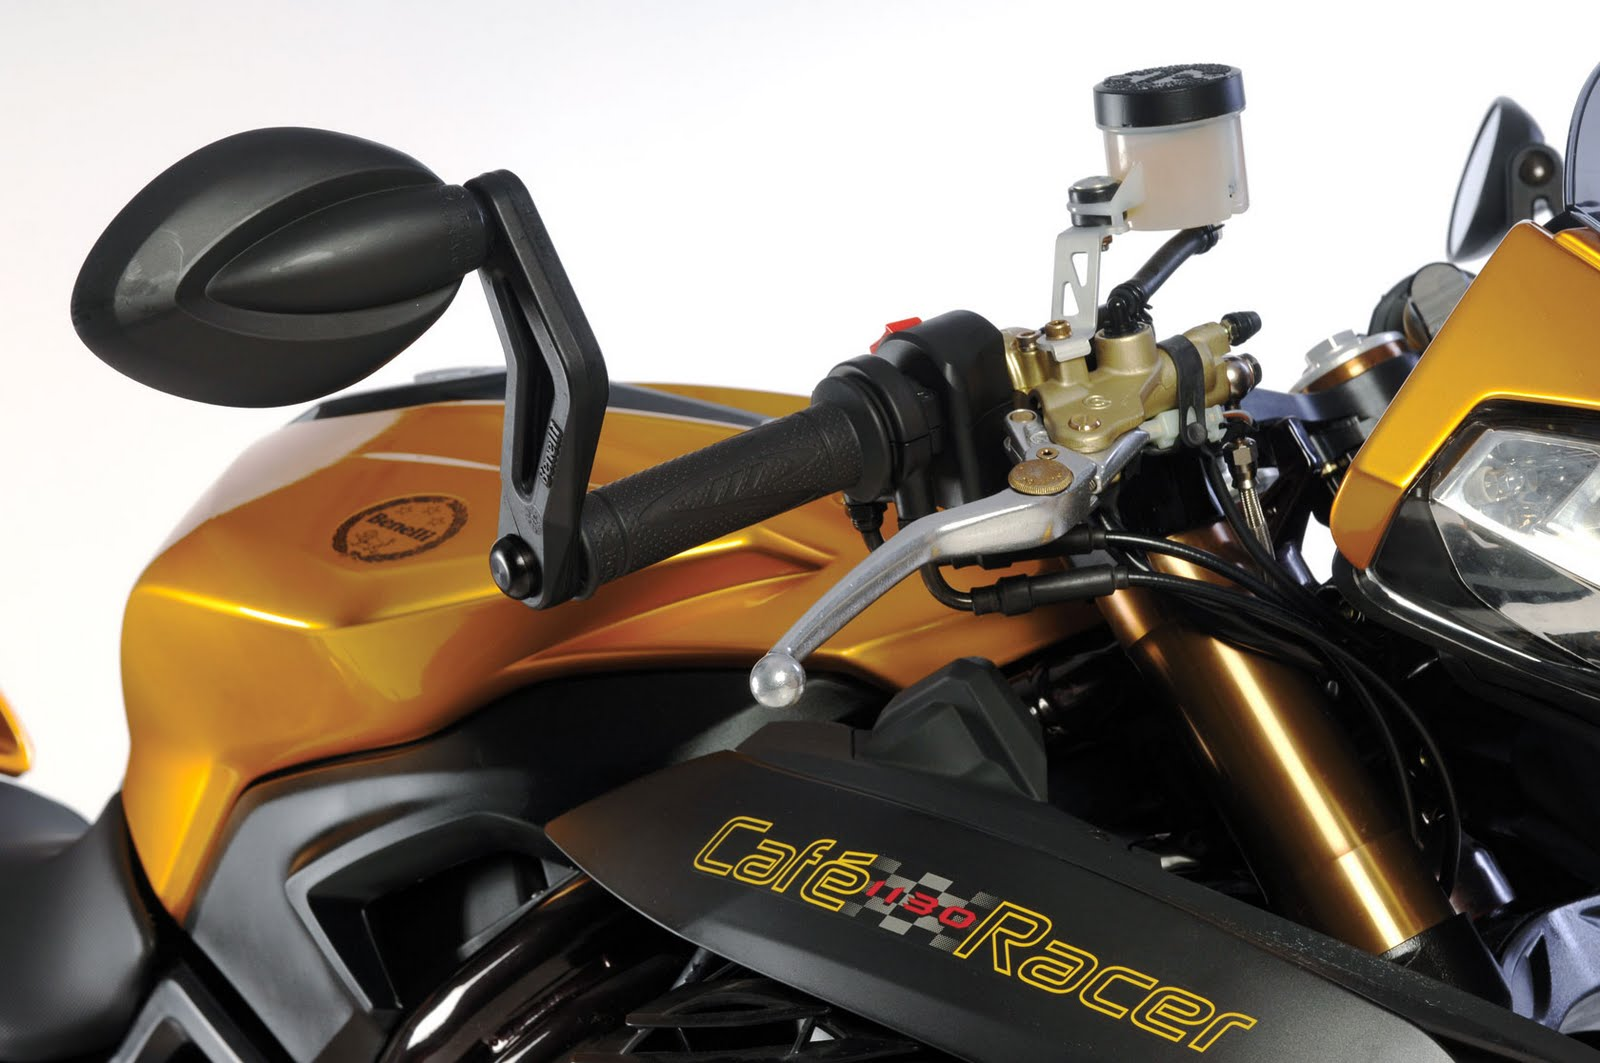 Benelli Cafe Racer 1130 #6